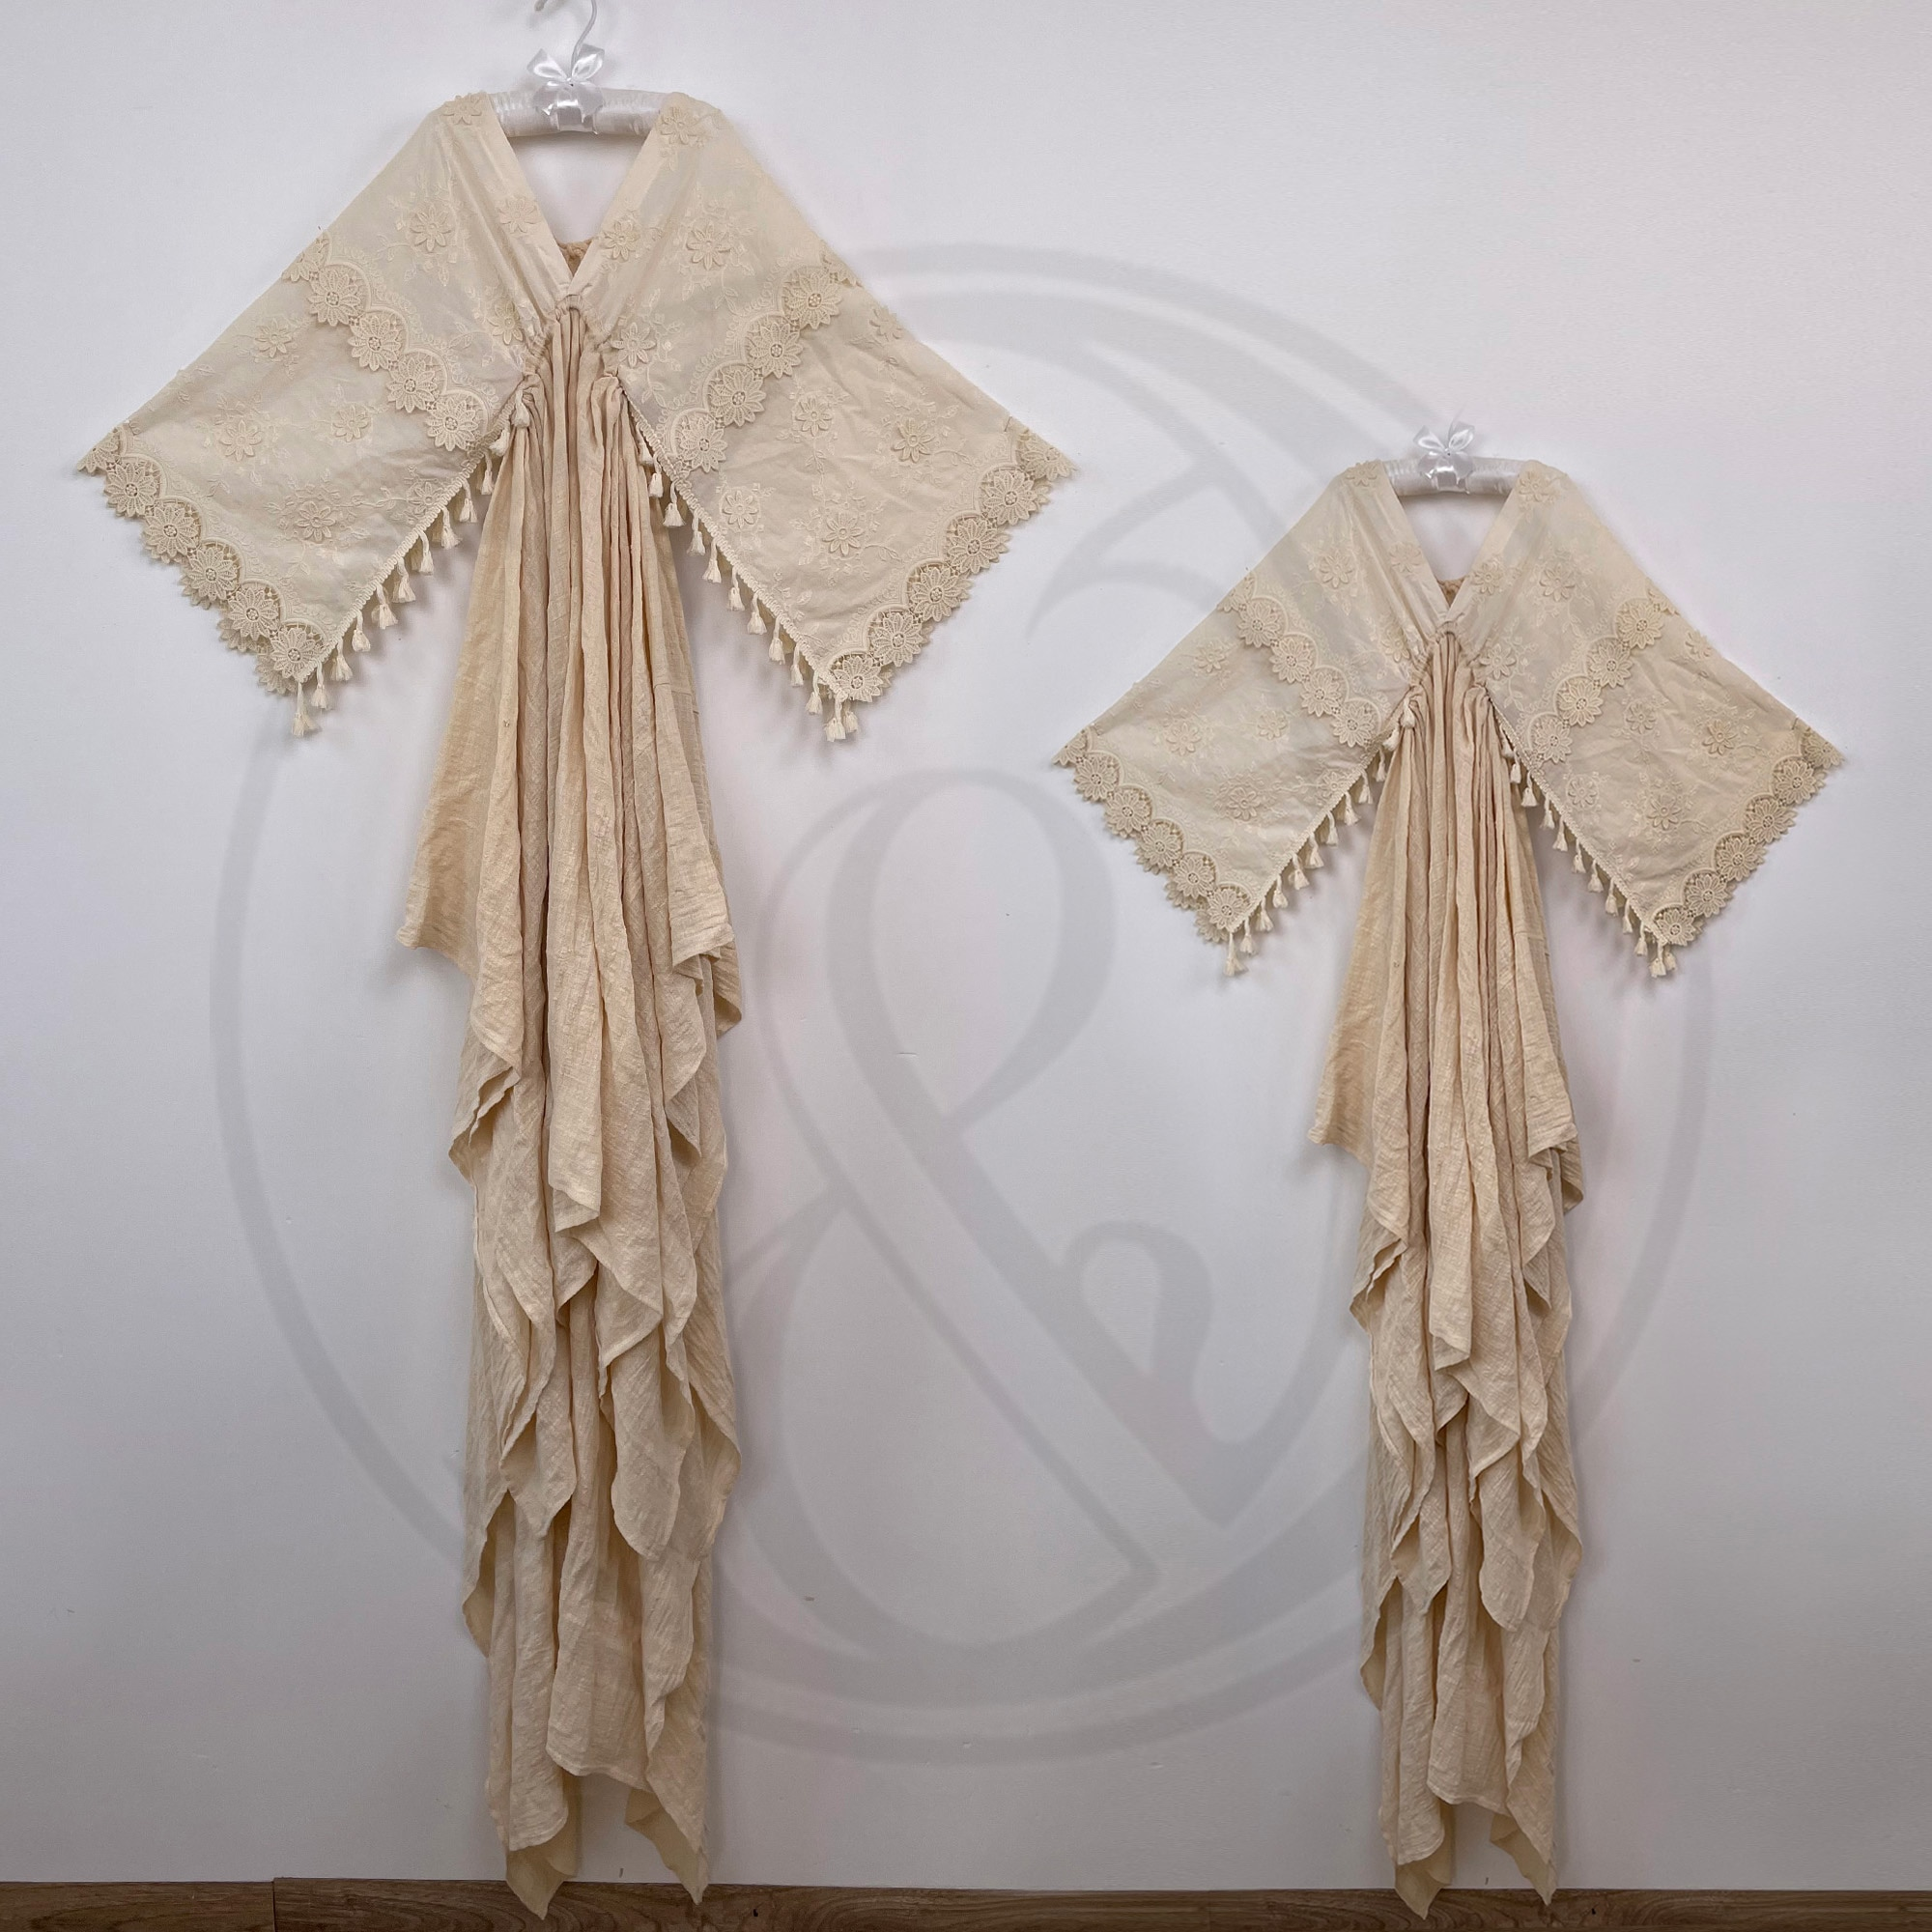 A Set Robe Photo Shoot Props Boho Cotton Kaftan Maternity Dress Evening Party Costume for Women Photography Accessories